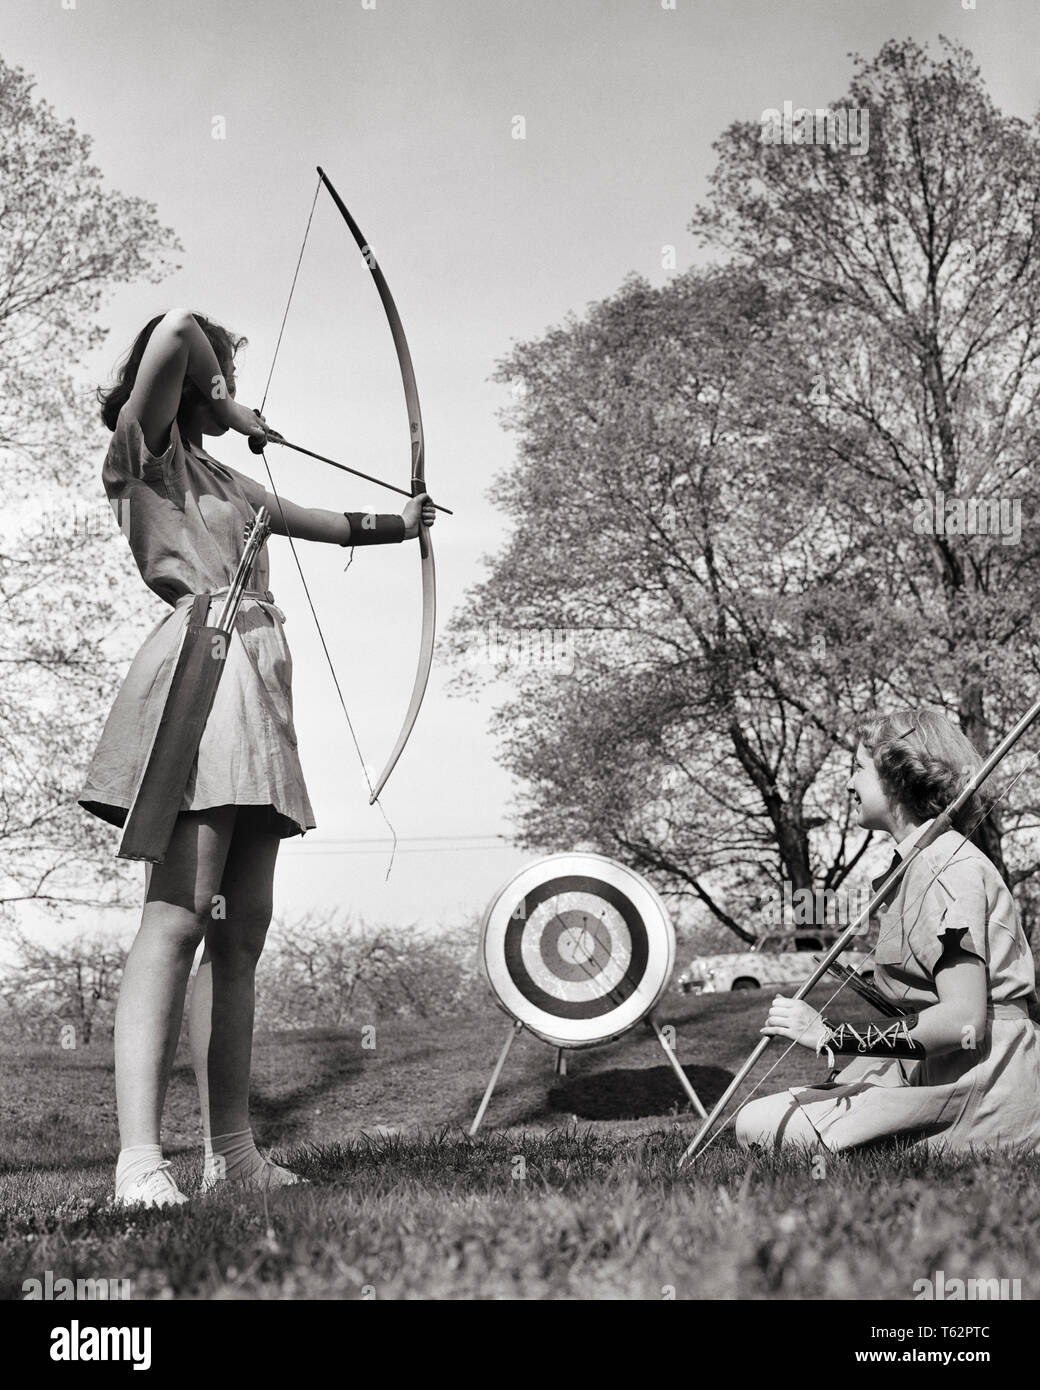 1950s TWO ANONYMOUS TEENAGE GIRLS PRACTICING ARCHERY TOGETHER AT CAMP IN COUNTRY - a1410 HAR001 HARS SAFETY COMPETITION ATHLETE RELAXING LIFESTYLE FEMALES RURAL COPY SPACE FRIENDSHIP FULL-LENGTH PHYSICAL FITNESS PERSONS ARCHERY RISK TEENAGE GIRL ARROW ATHLETIC CONFIDENCE B&W SUCCESS SKILL ACTIVITY AMUSEMENT HAPPINESS ARROWS HOBBY LEISURE STRENGTH INTEREST EXCITEMENT HOBBIES KNOWLEDGE RECREATION PASTIME ARCHER PLEASURE AT IN CONCEPTUAL BOWS STYLISH TEENAGED ANONYMOUS AIMING COACHING JUVENILES PRECISION RELAXATION TOGETHERNESS AMATEUR BLACK AND WHITE CAUCASIAN ETHNICITY ENJOYMENT HAR001 - Stock Image